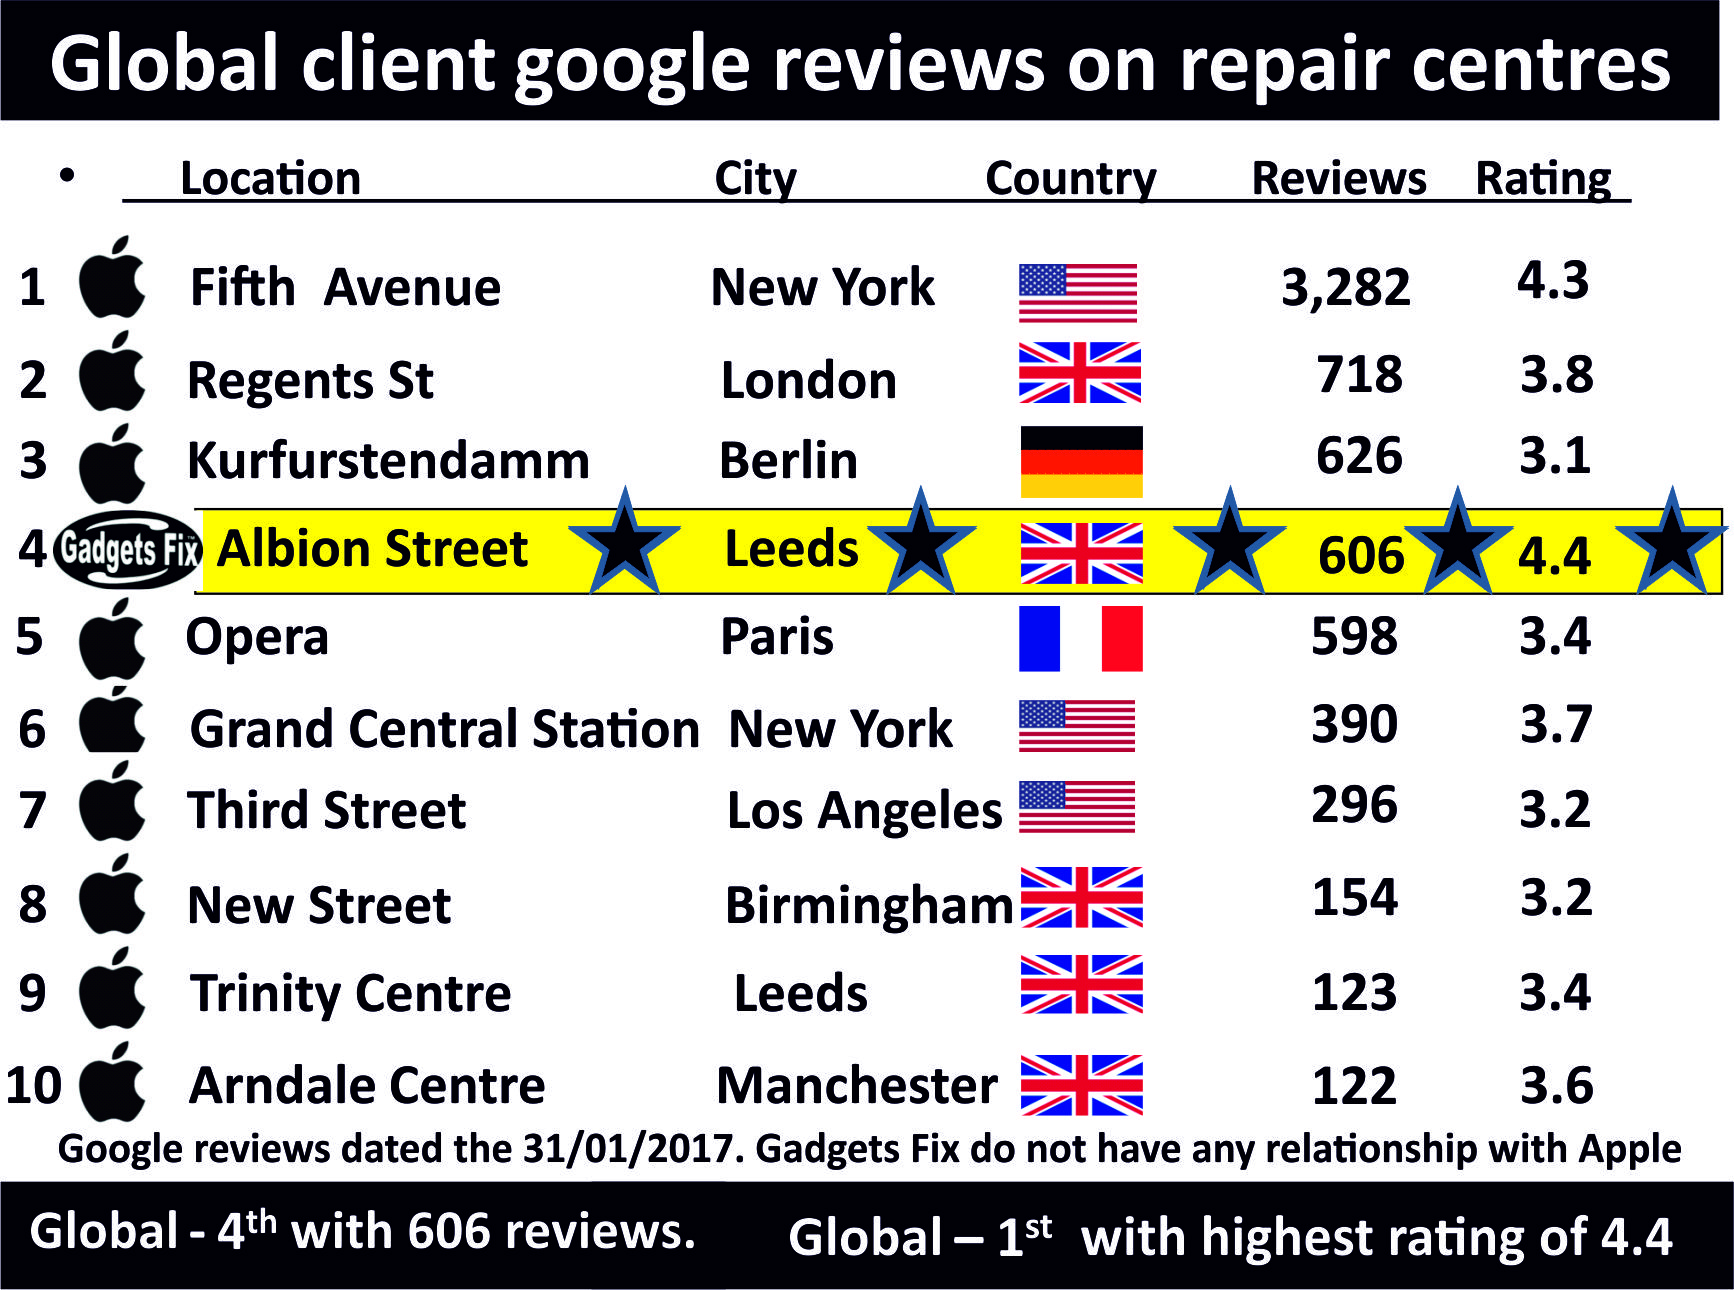 Global apple google reviews  in comparison to GadgetsFix.com